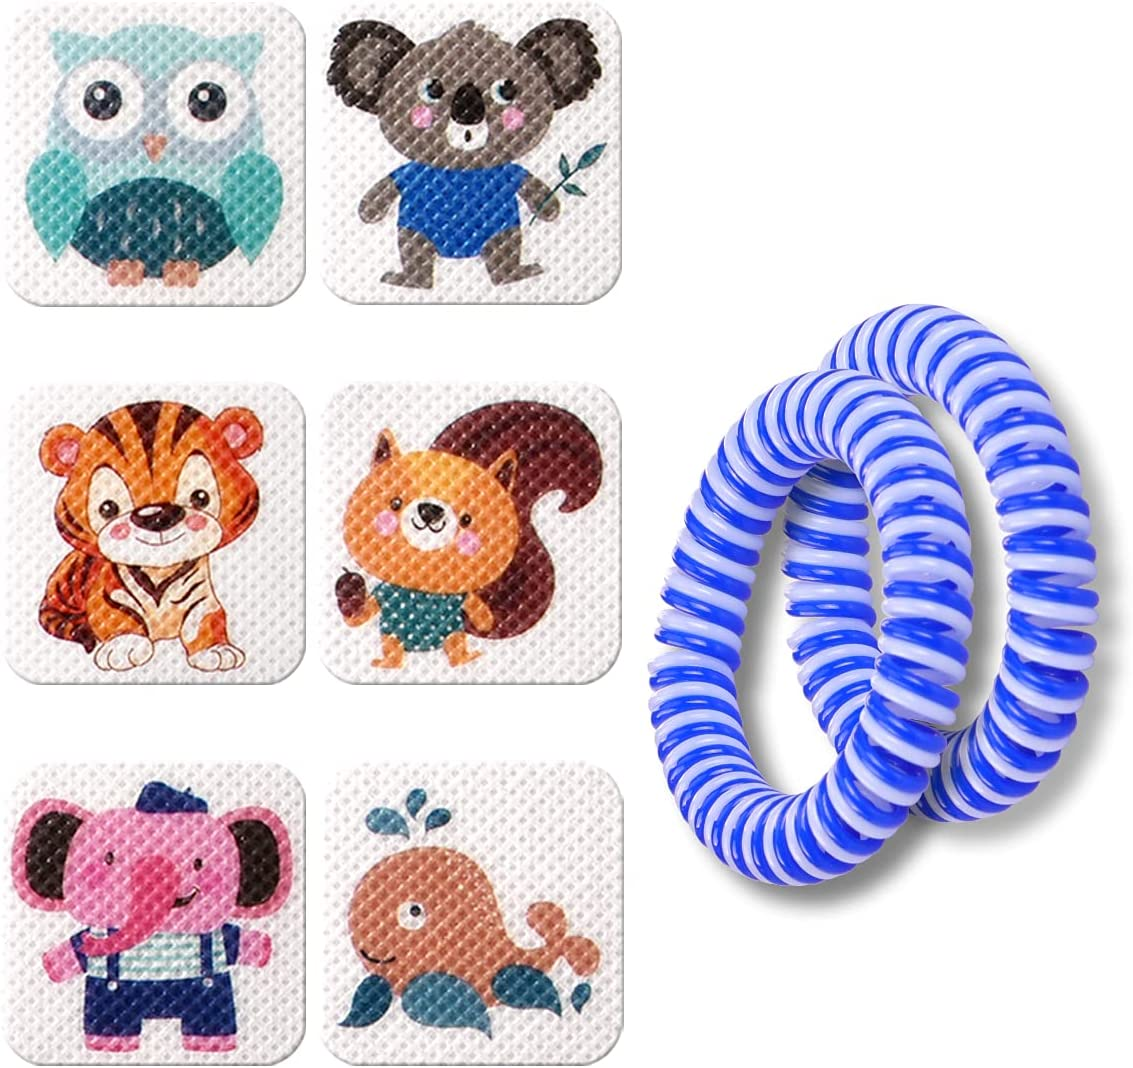 Popular popular BuggyBands 120 Pack Mosquito Patches Stickers N for Adult - Many popular brands Kids